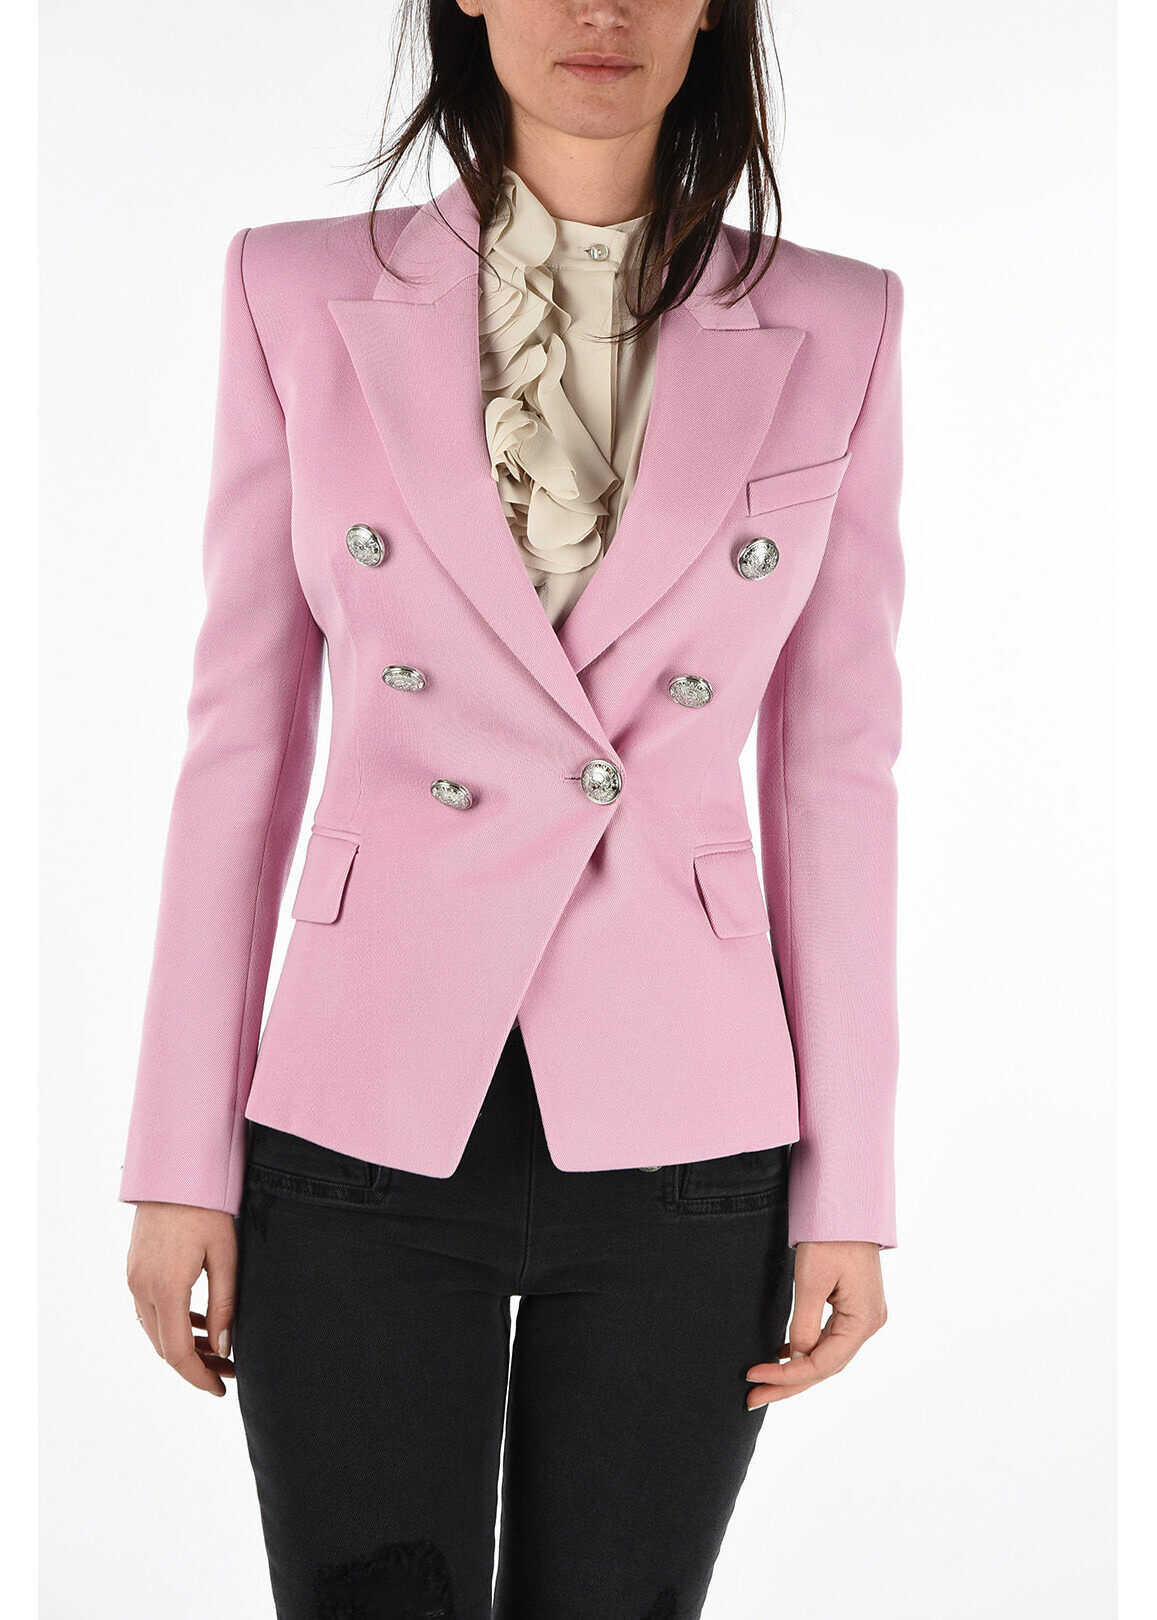 Balmain virgin wool no vent double-breasted blazer PINK